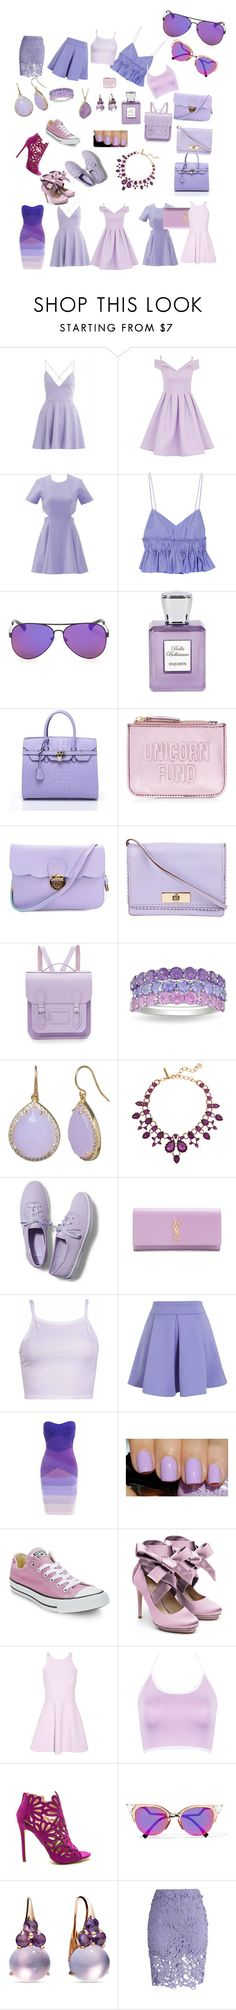 """""""Lilac dream"""" by emmathebae ❤ liked on Polyvore featuring AX Paris, Chi Chi, Elizabeth and James, Tod's, Bella Bellissima, New Look, Kate Spade, The Cambridge Satchel Company, Ice and Oscar de la Renta"""